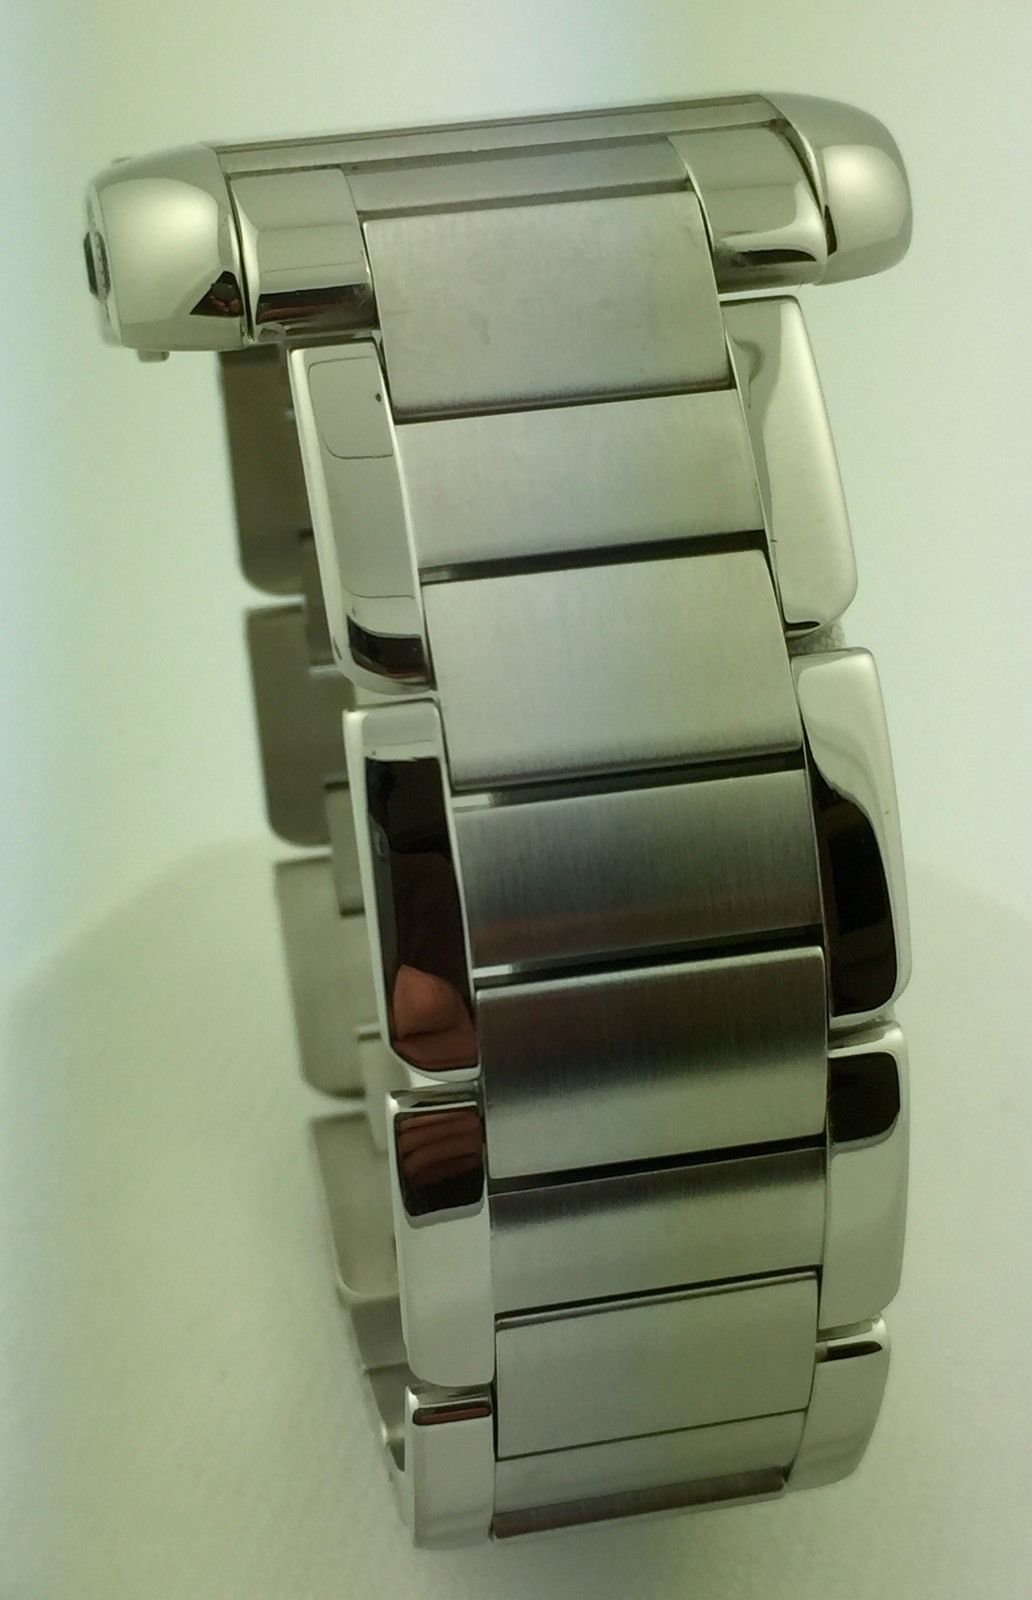 s l1600 4 4 - Cartier Tank Anglaise XL